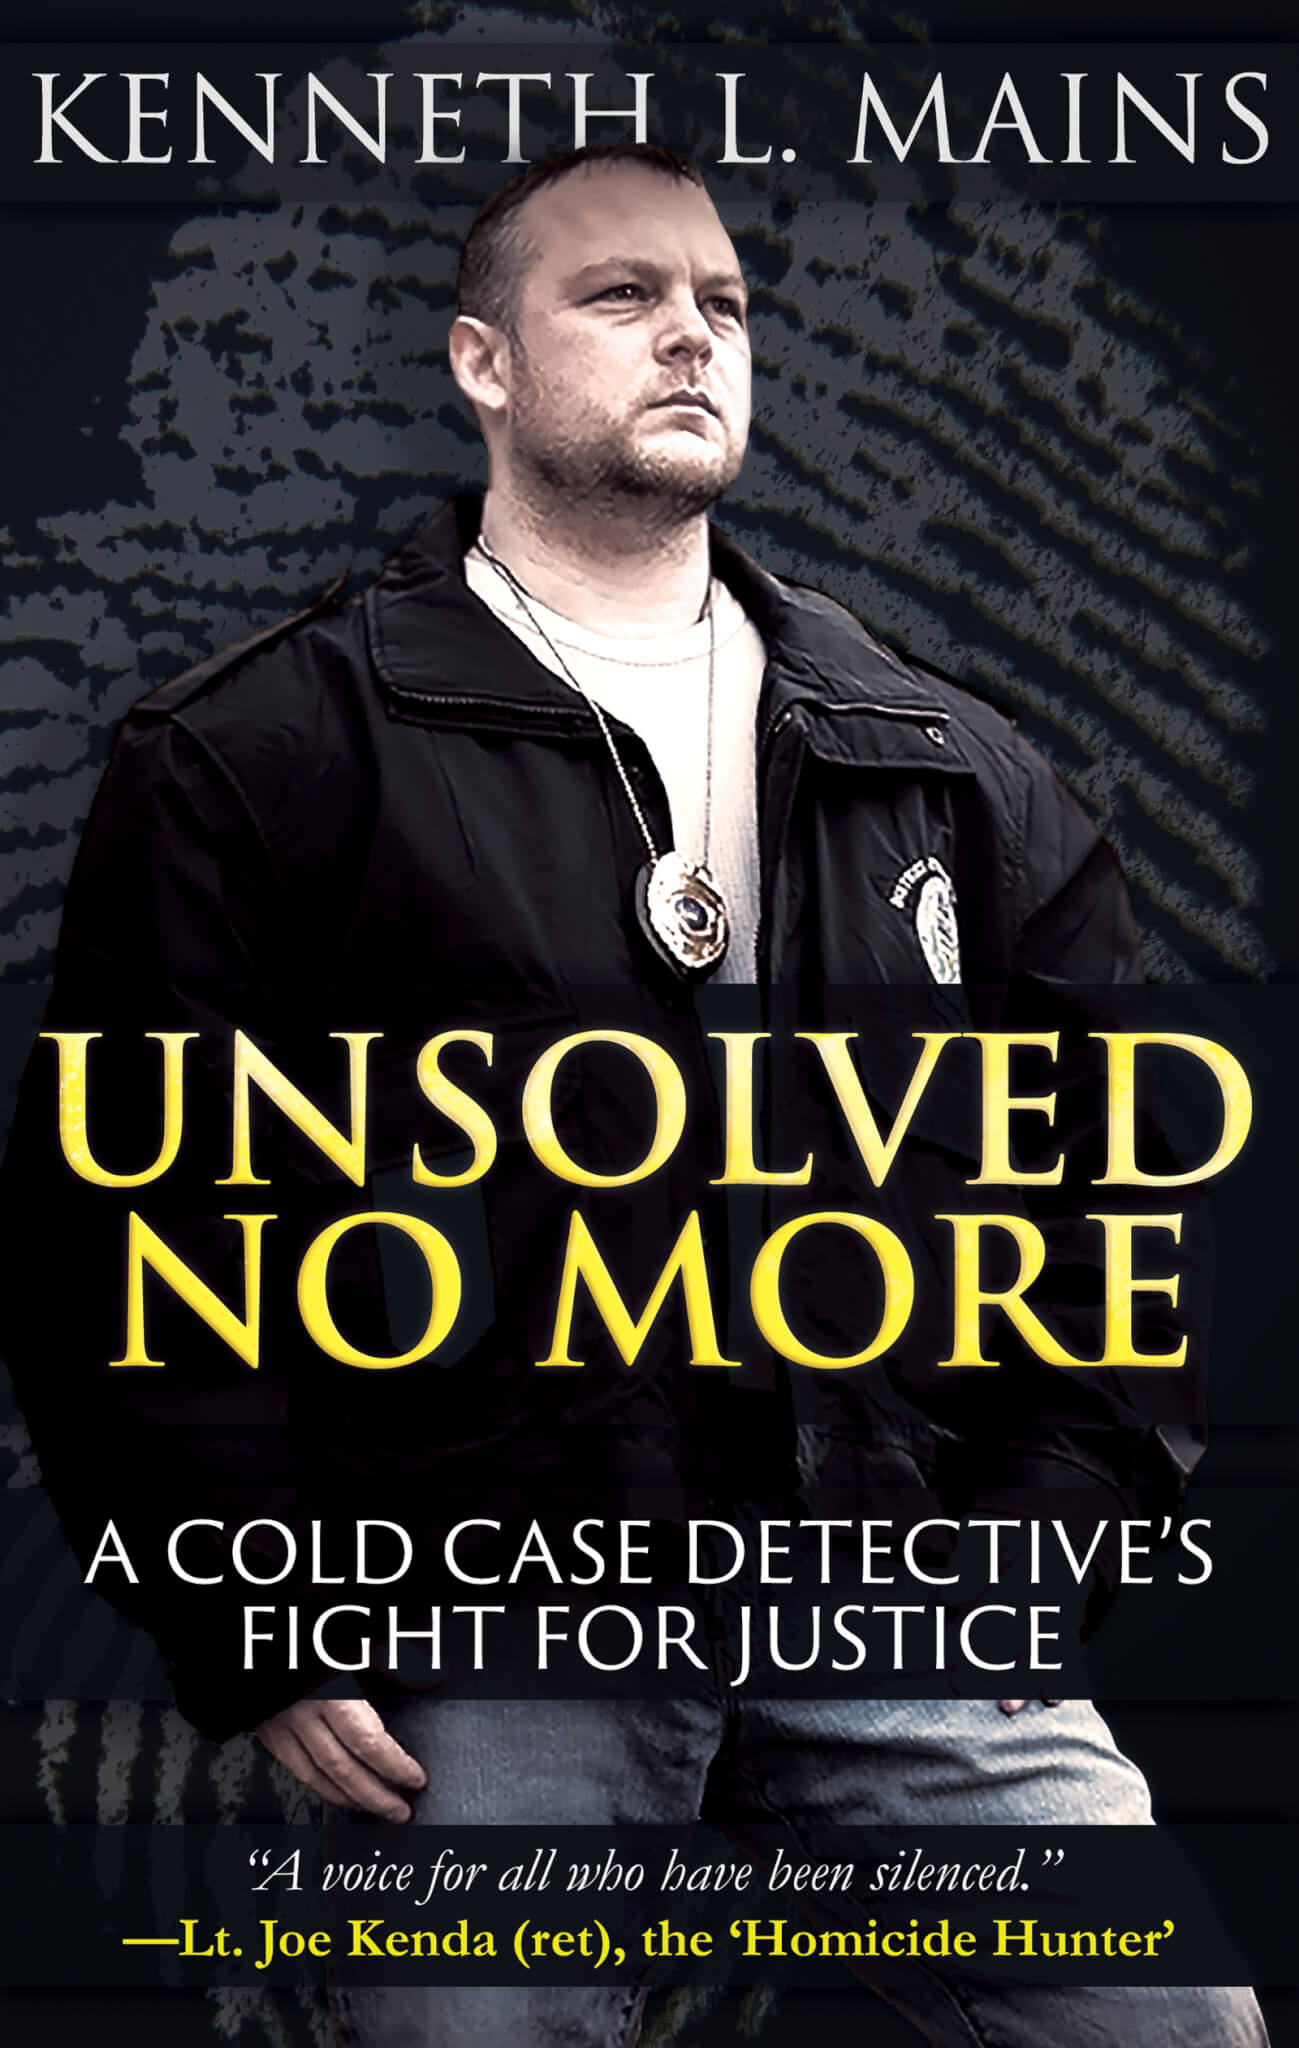 A Cold Case Detective's Journey Is Brought To Life In